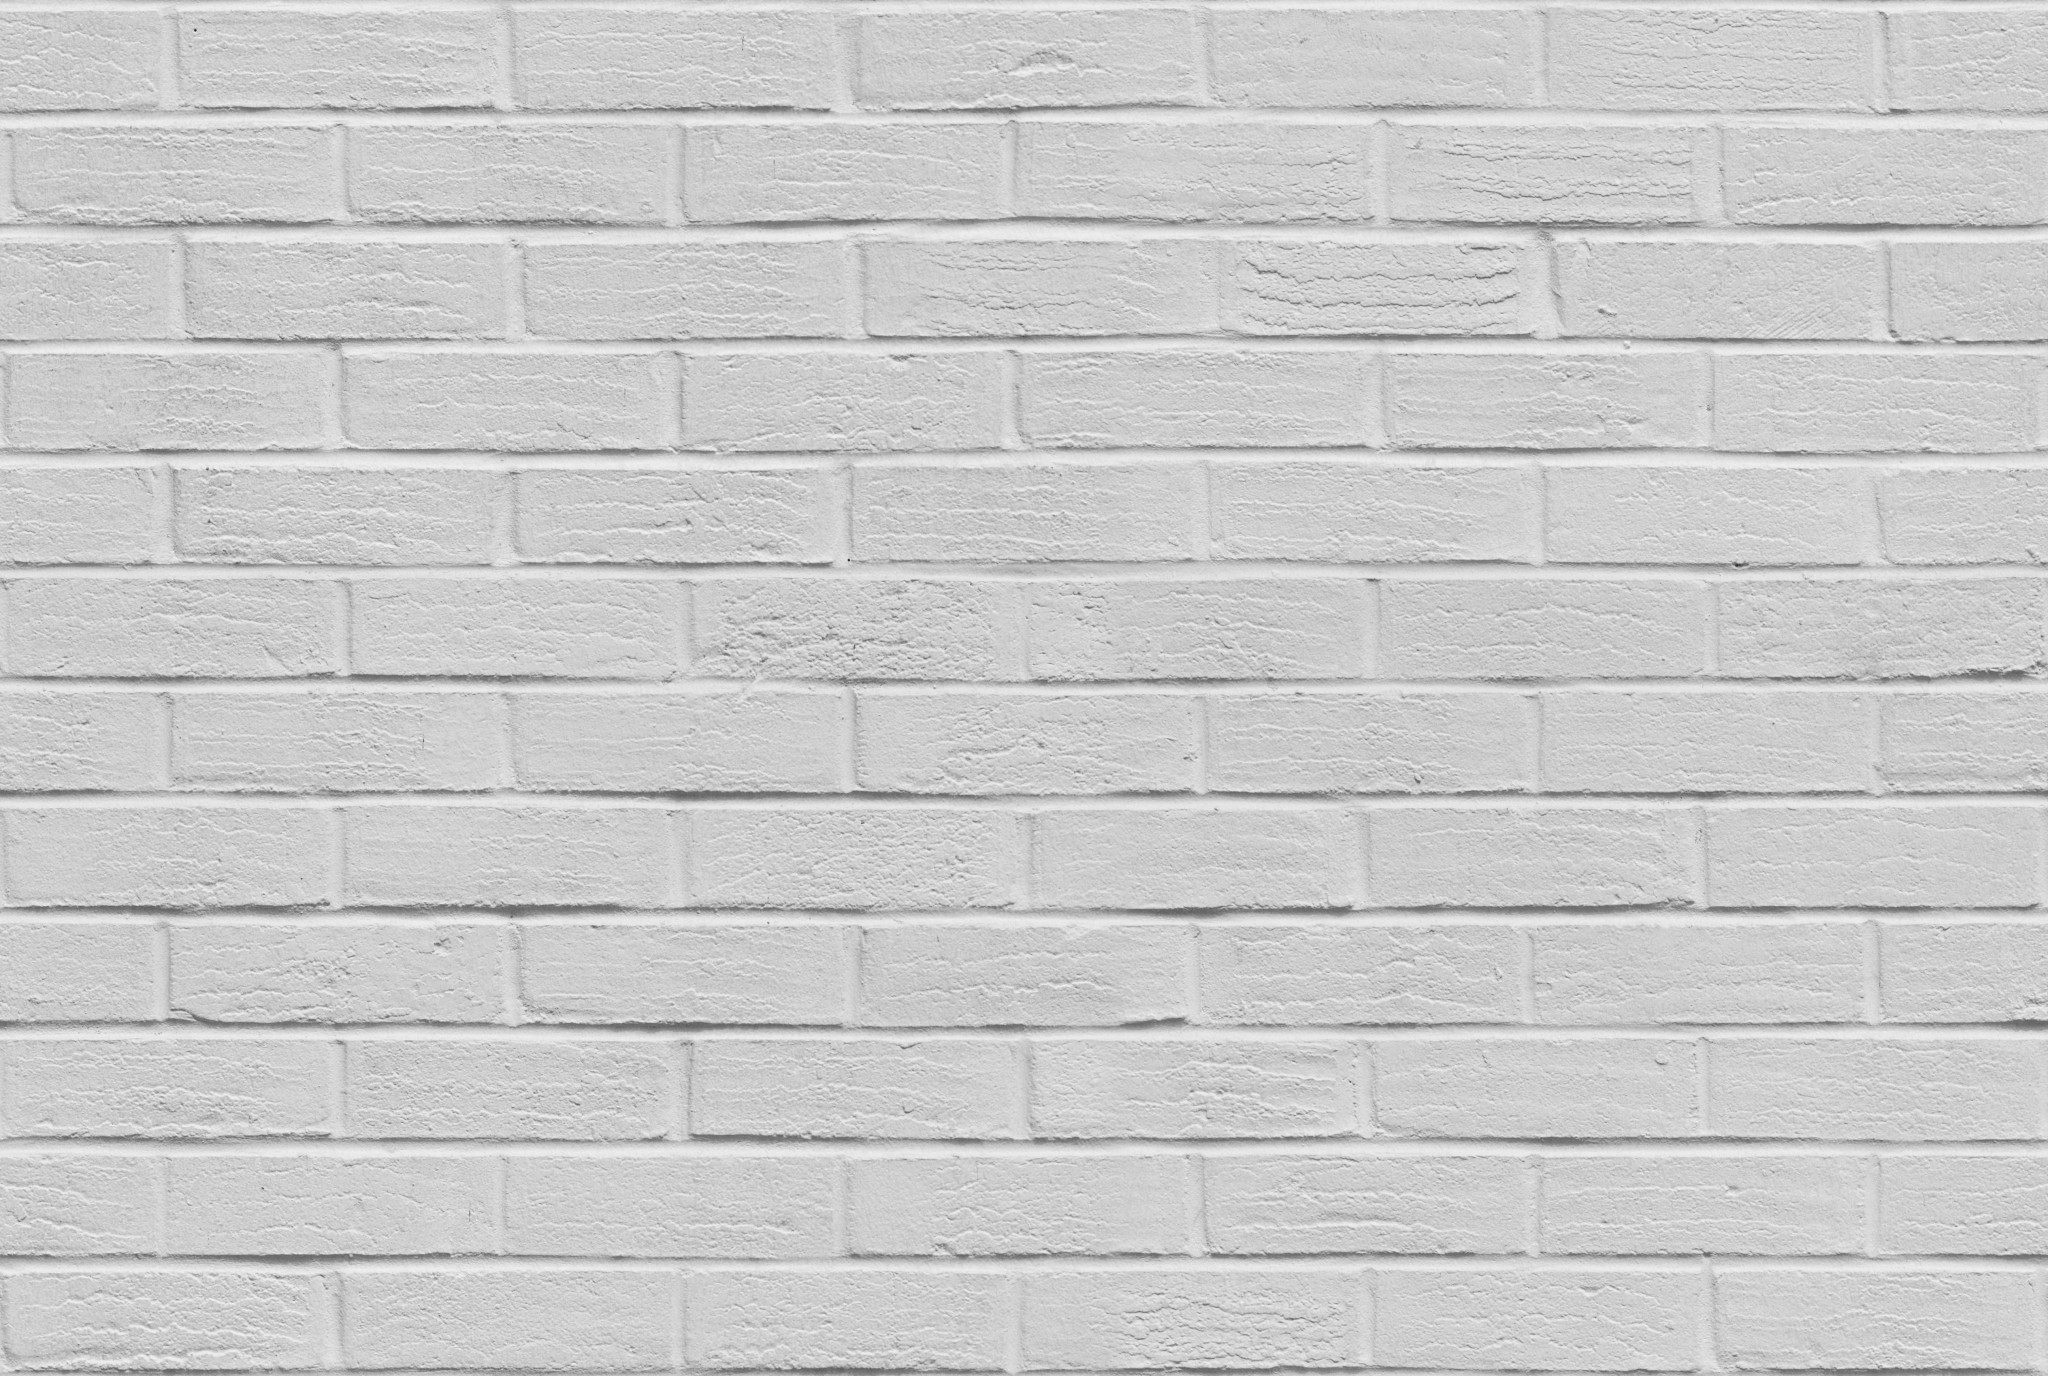 Iphone Built In Wallpapers White Brick Wallpaper 183 ① Download Free Awesome High